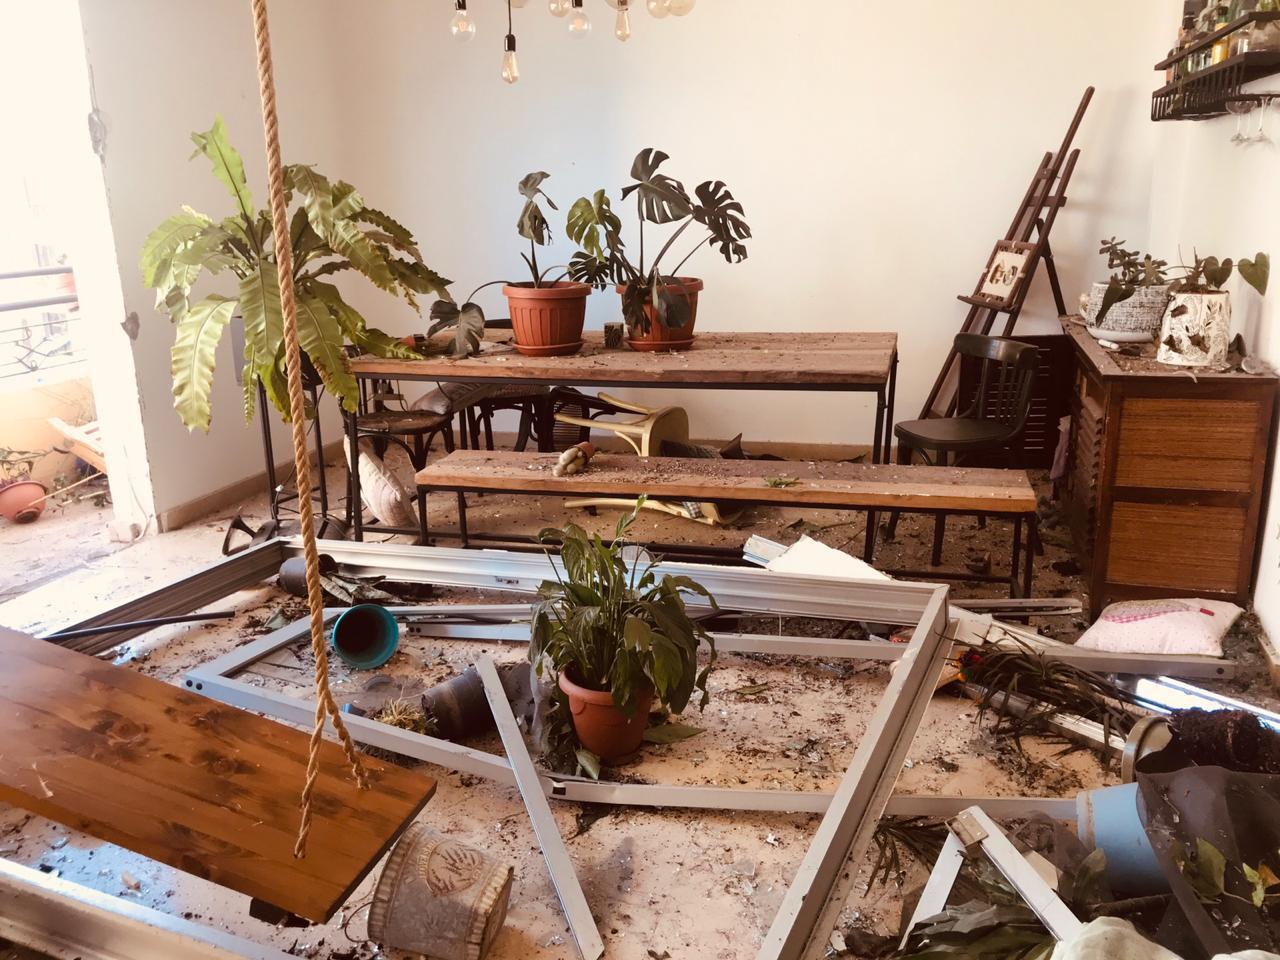 Jackeline Atwi's home after the explosion.